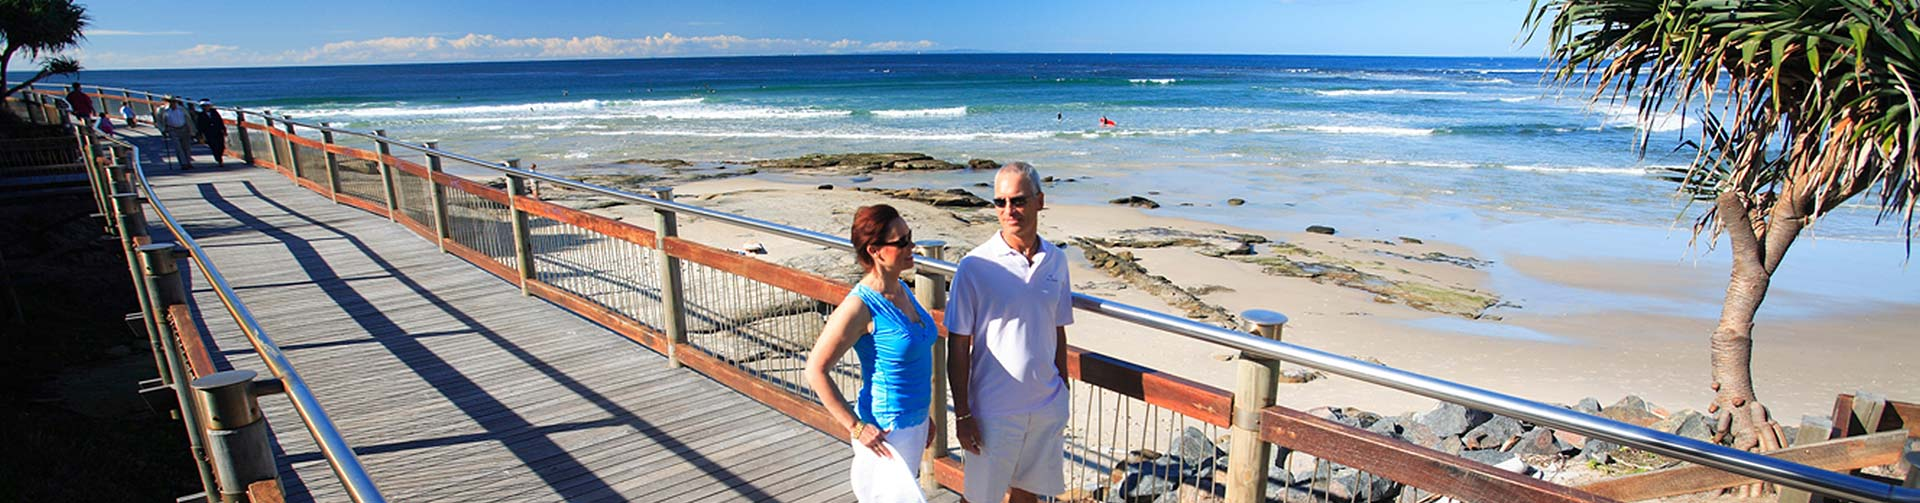 Caloundra Coastal boardwalk